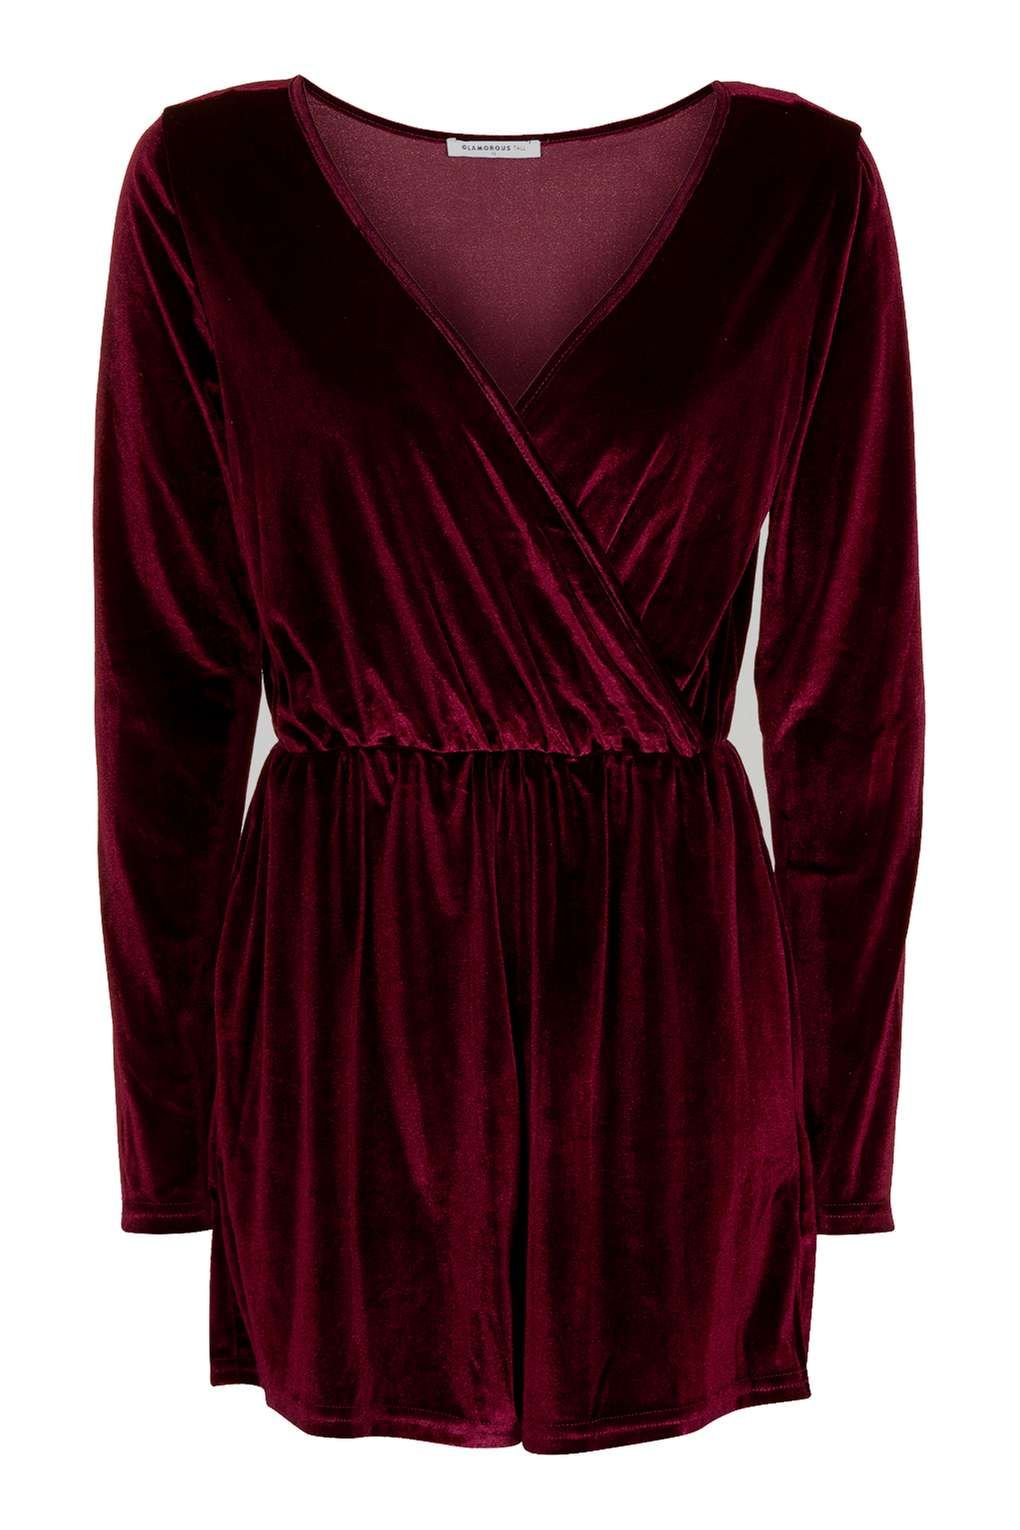 **Velvet Wrap Front Playsuit by Glamorous Tall - Tall - Clothing - Topshop Europe